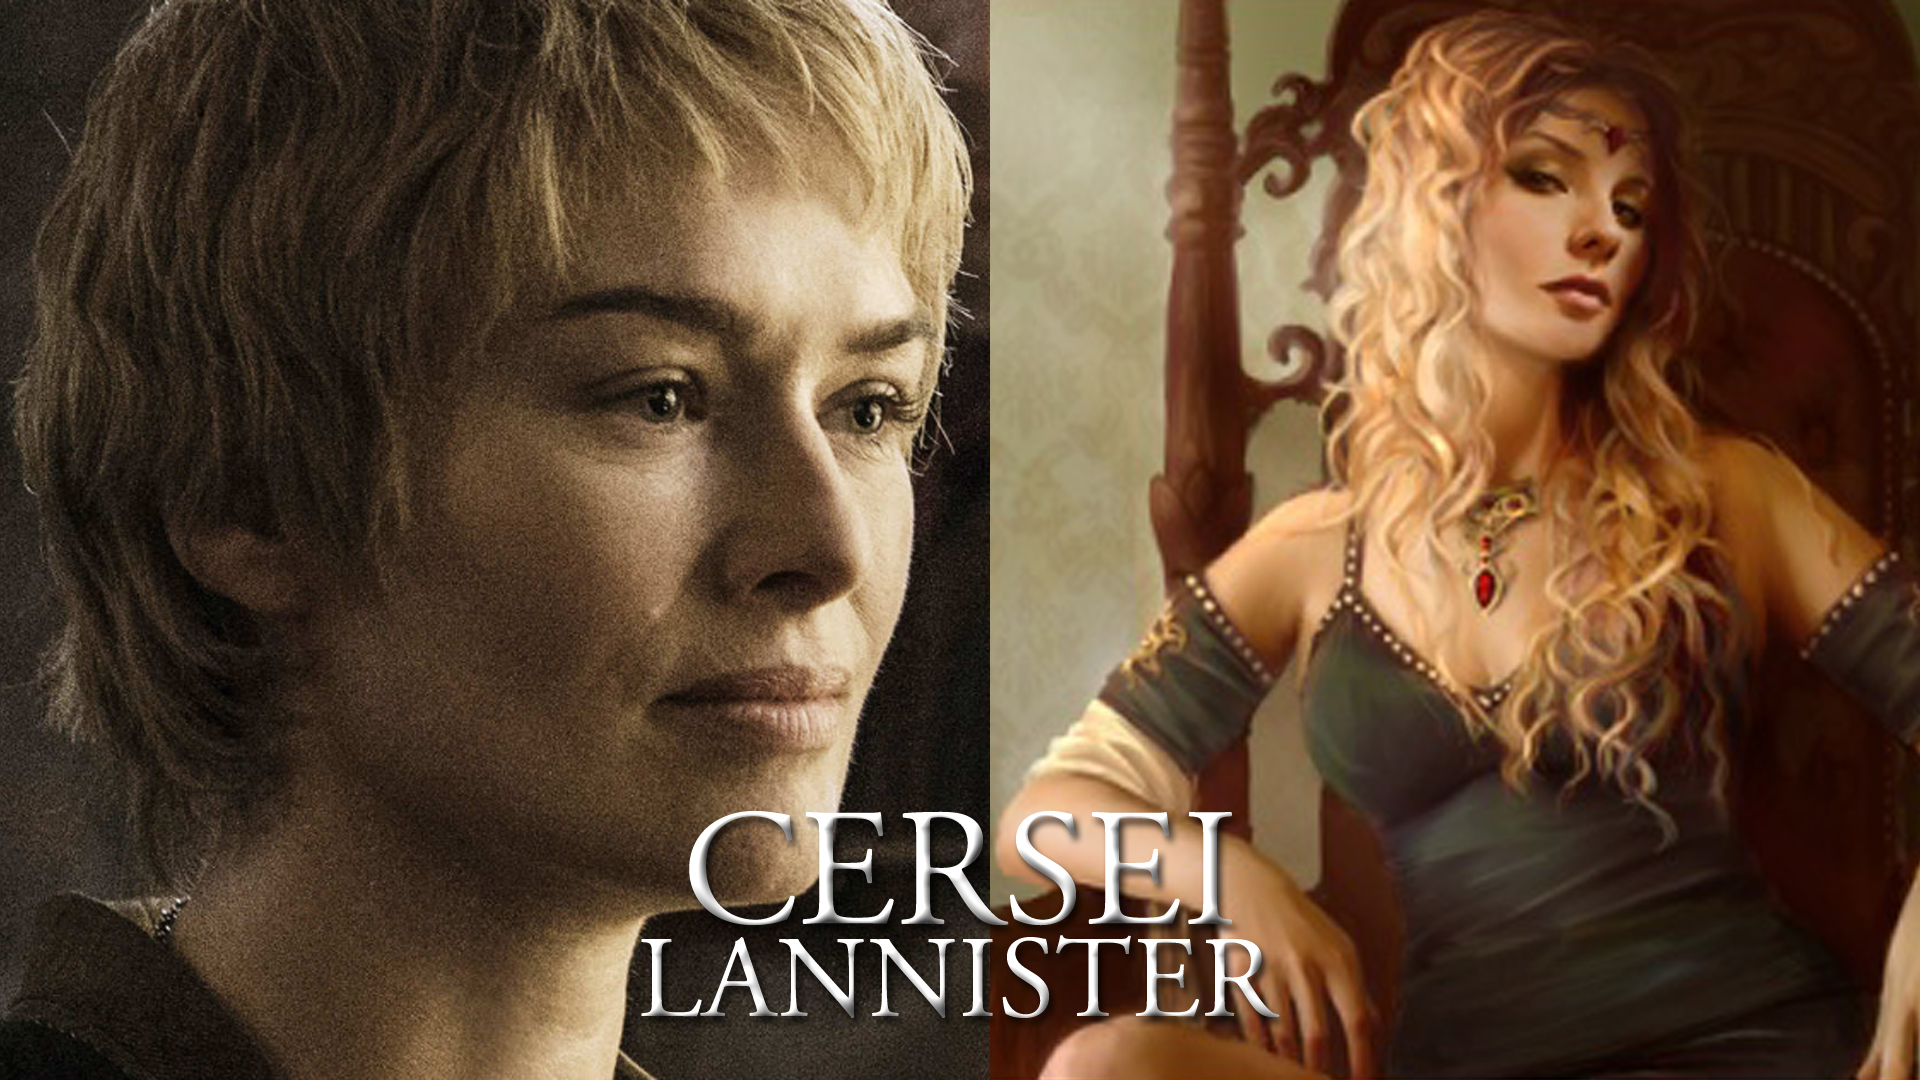 Is Cersei Evil, or Misunderstood?